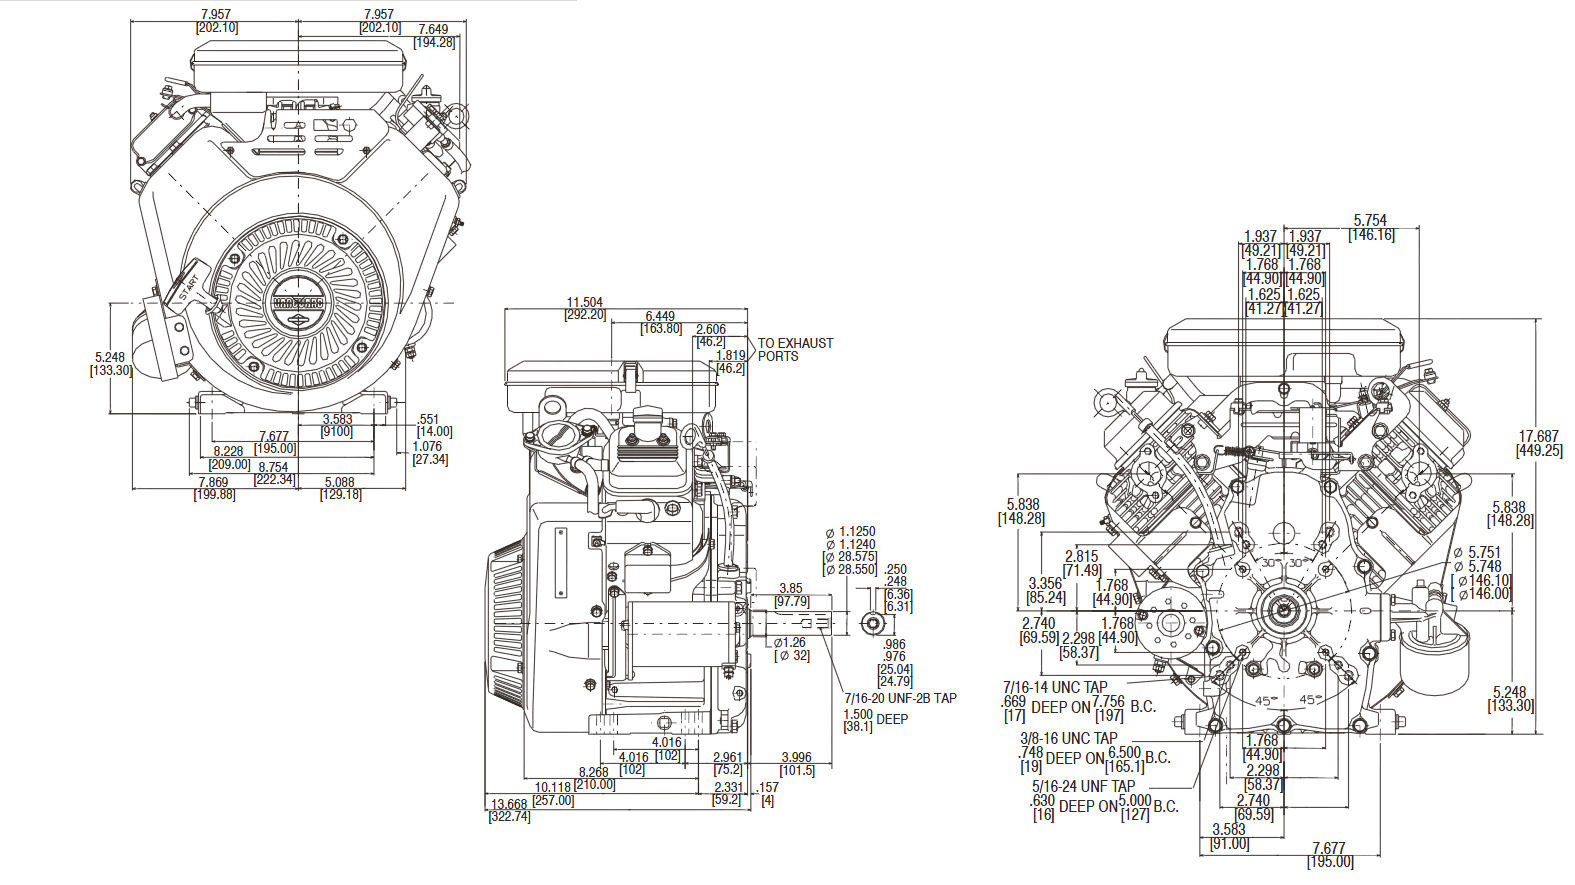 [DIAGRAM] Marine Twin Engine Wiring Diagram FULL Version